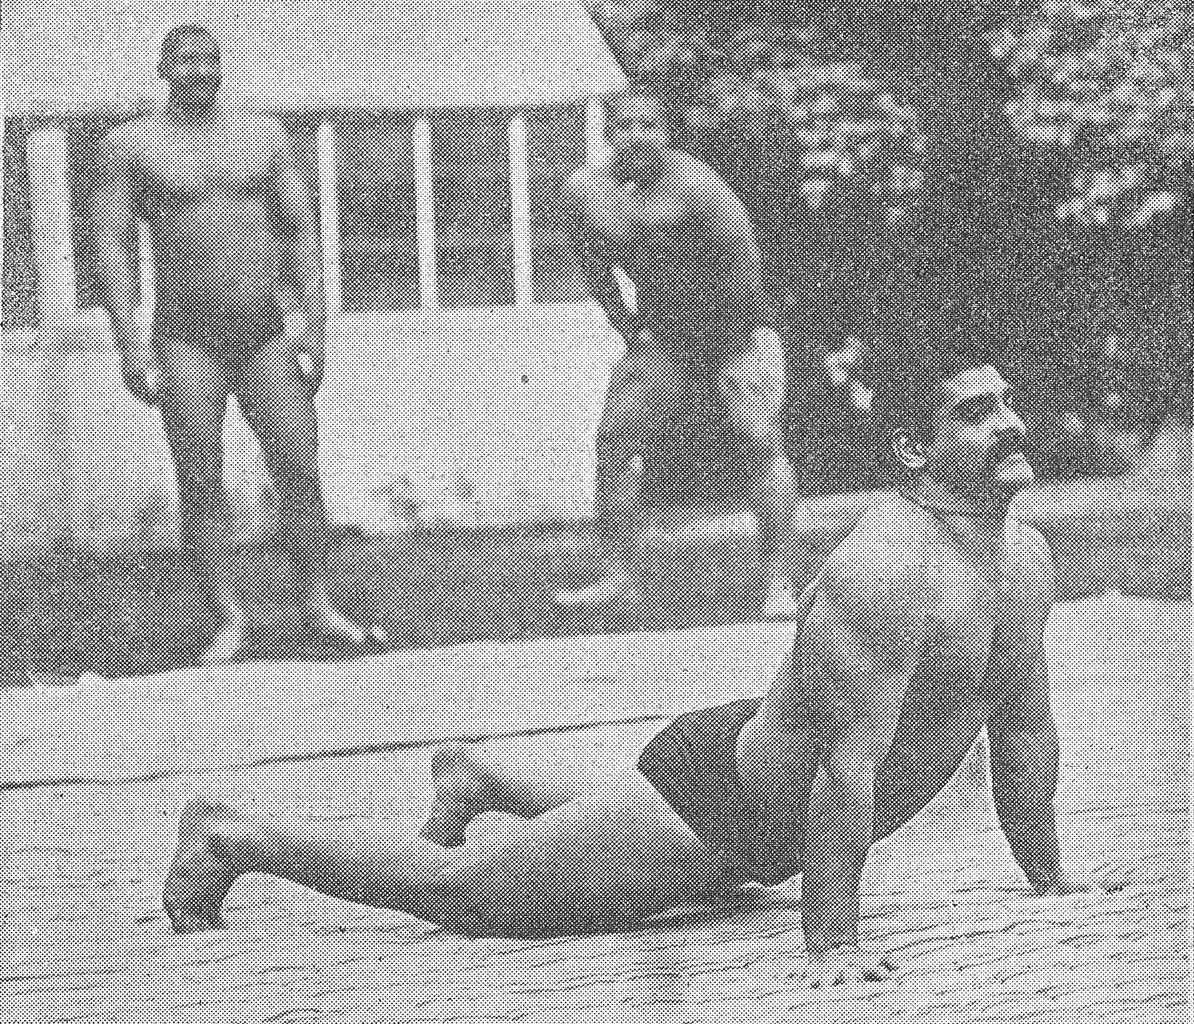 The Great Gama, Gobar Goho, Wrestling in India, Akhara, Pehelwan